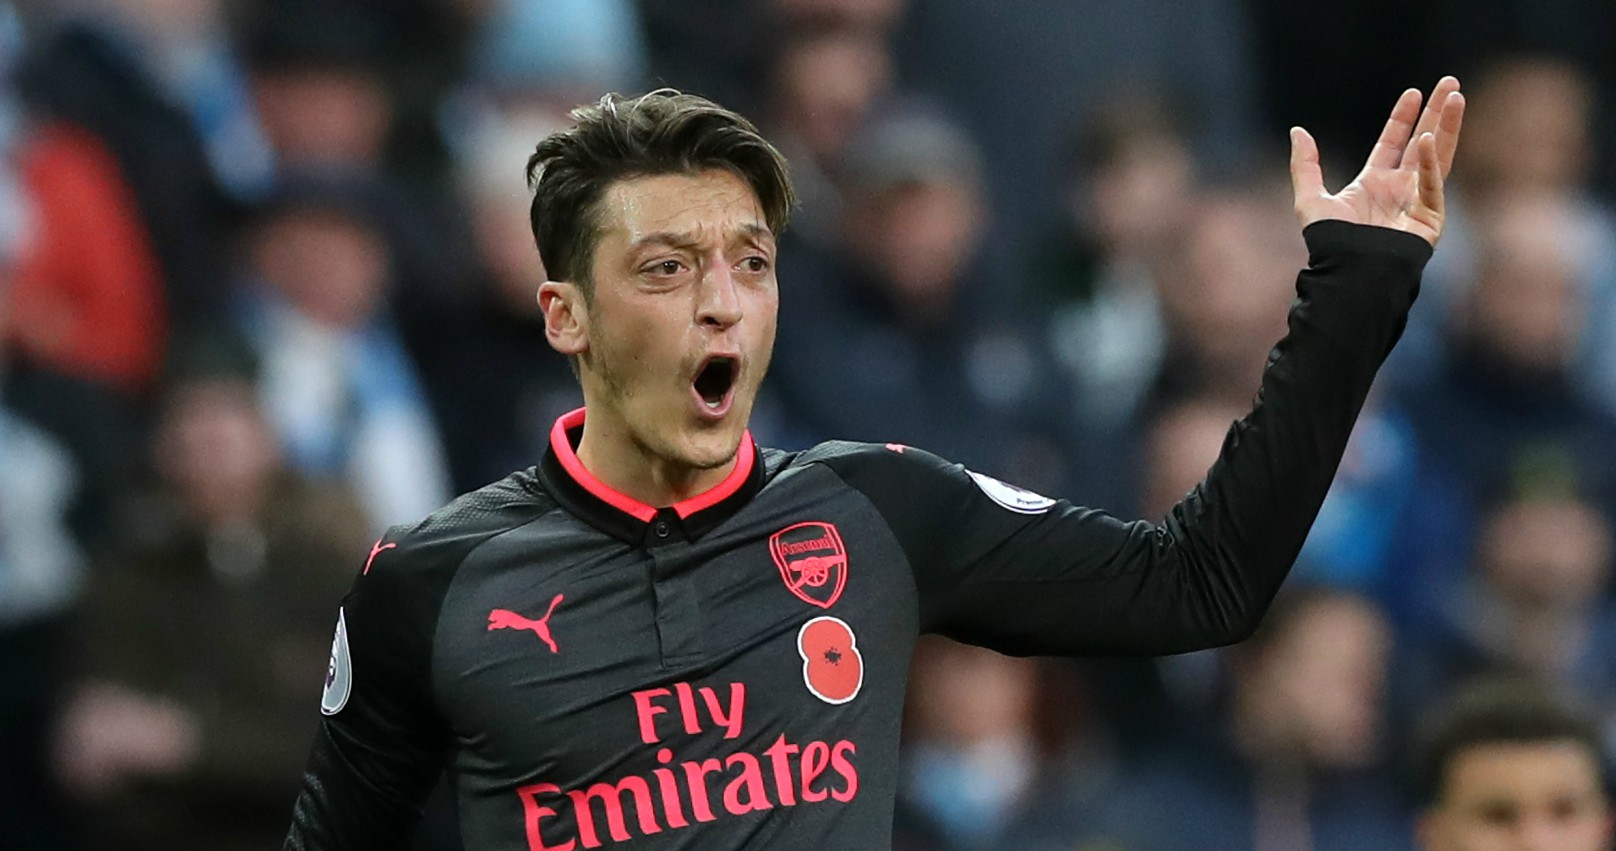 Mails on hating Mesut Ozil and doubting Marcus Rashford